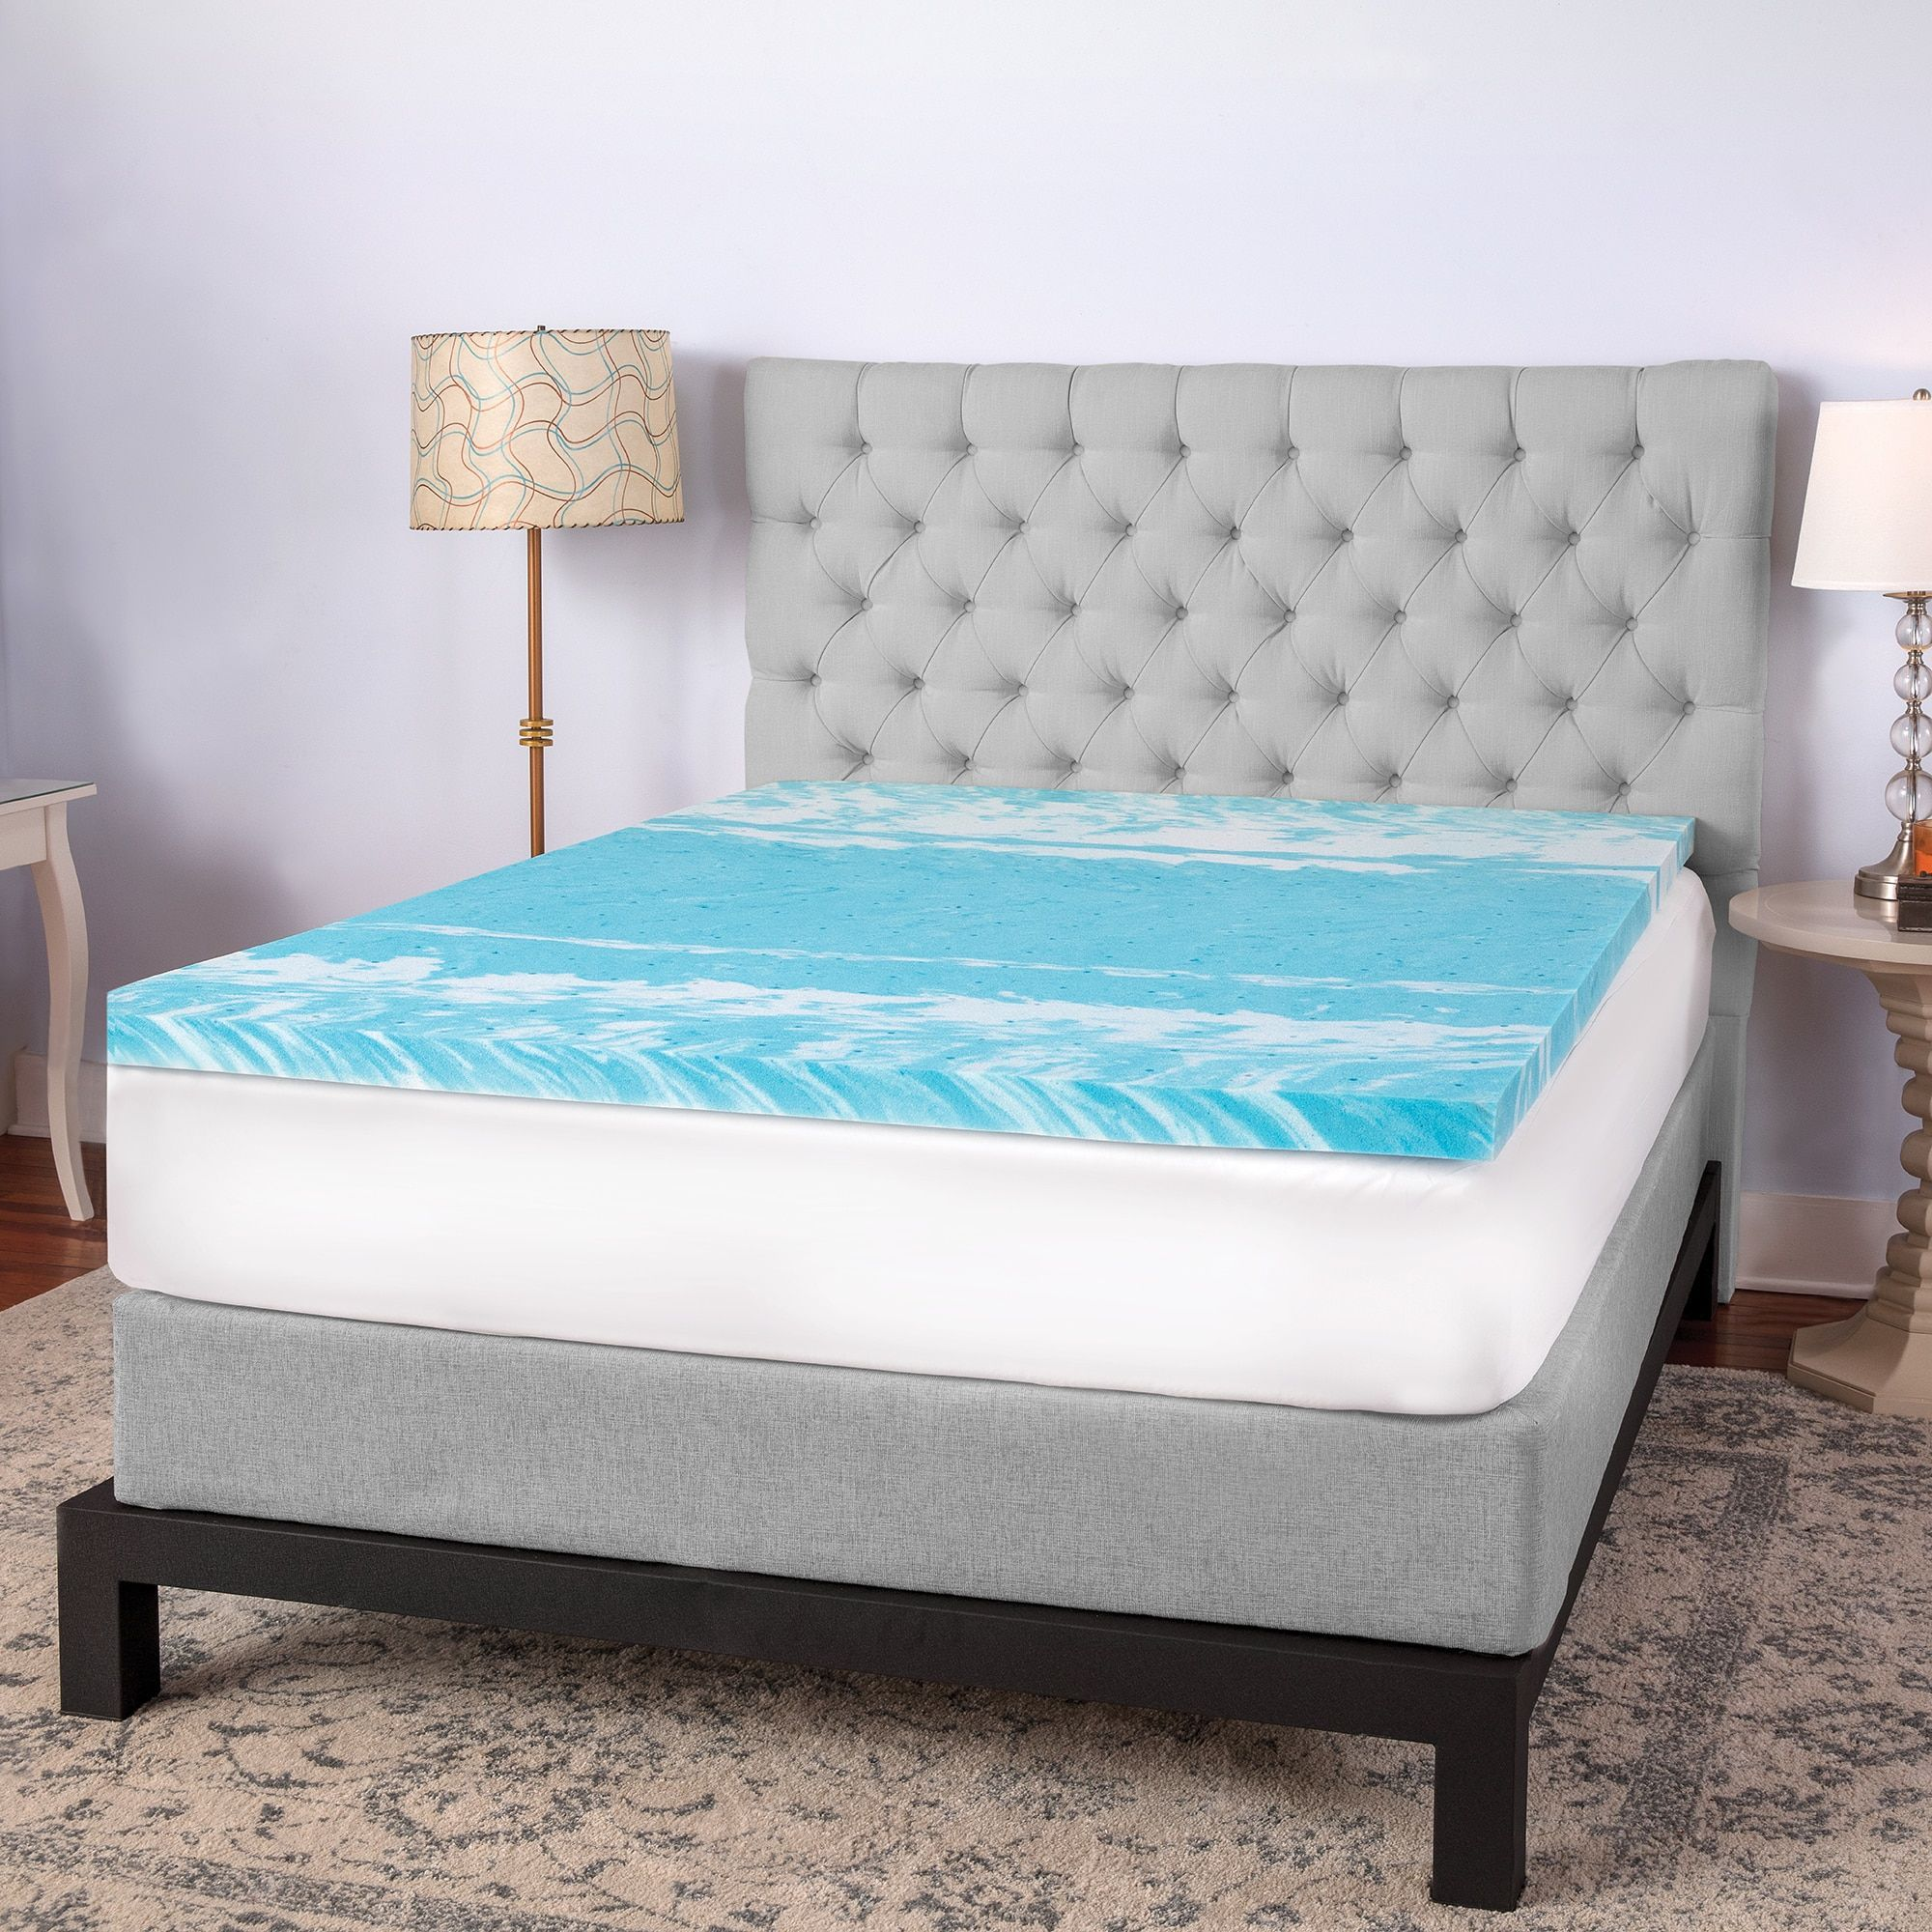 gel shipping bedding mattress loft overstock from sculpted memory comforpedic beautyrest foam topper bath inch today free product